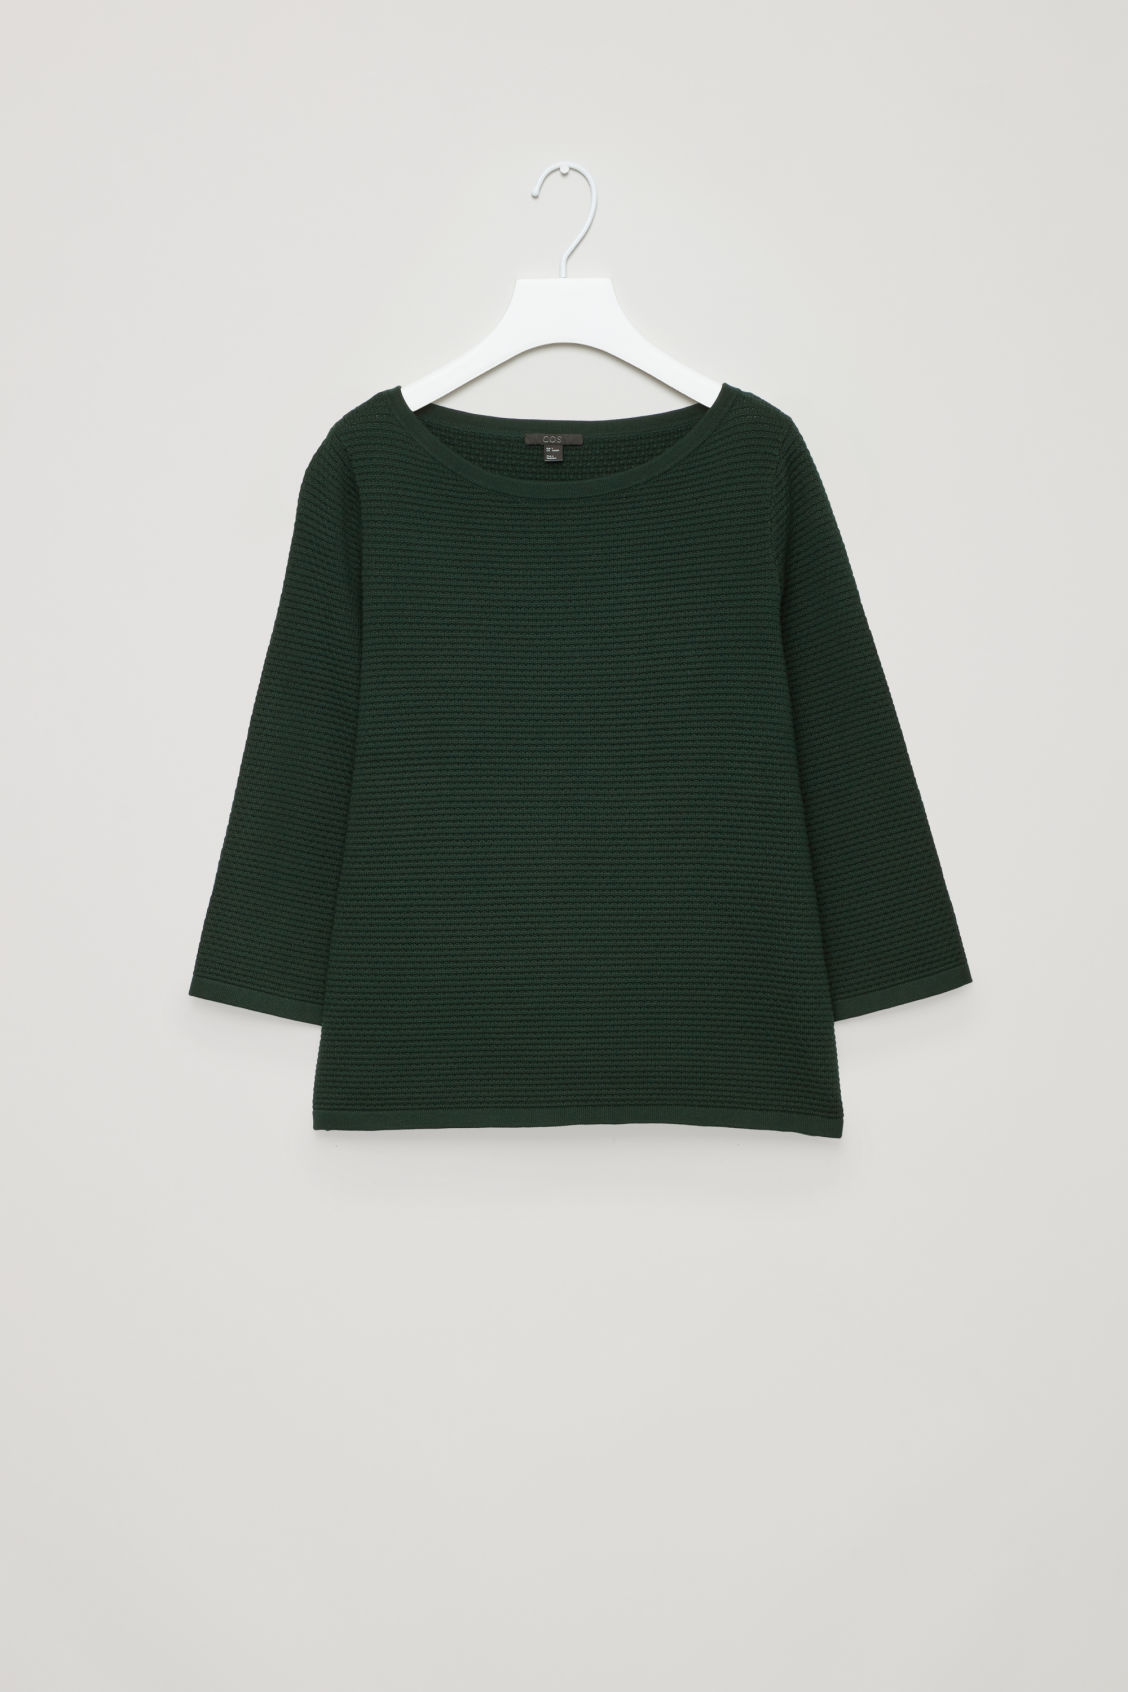 Textured Knit Jumper, Green from COS